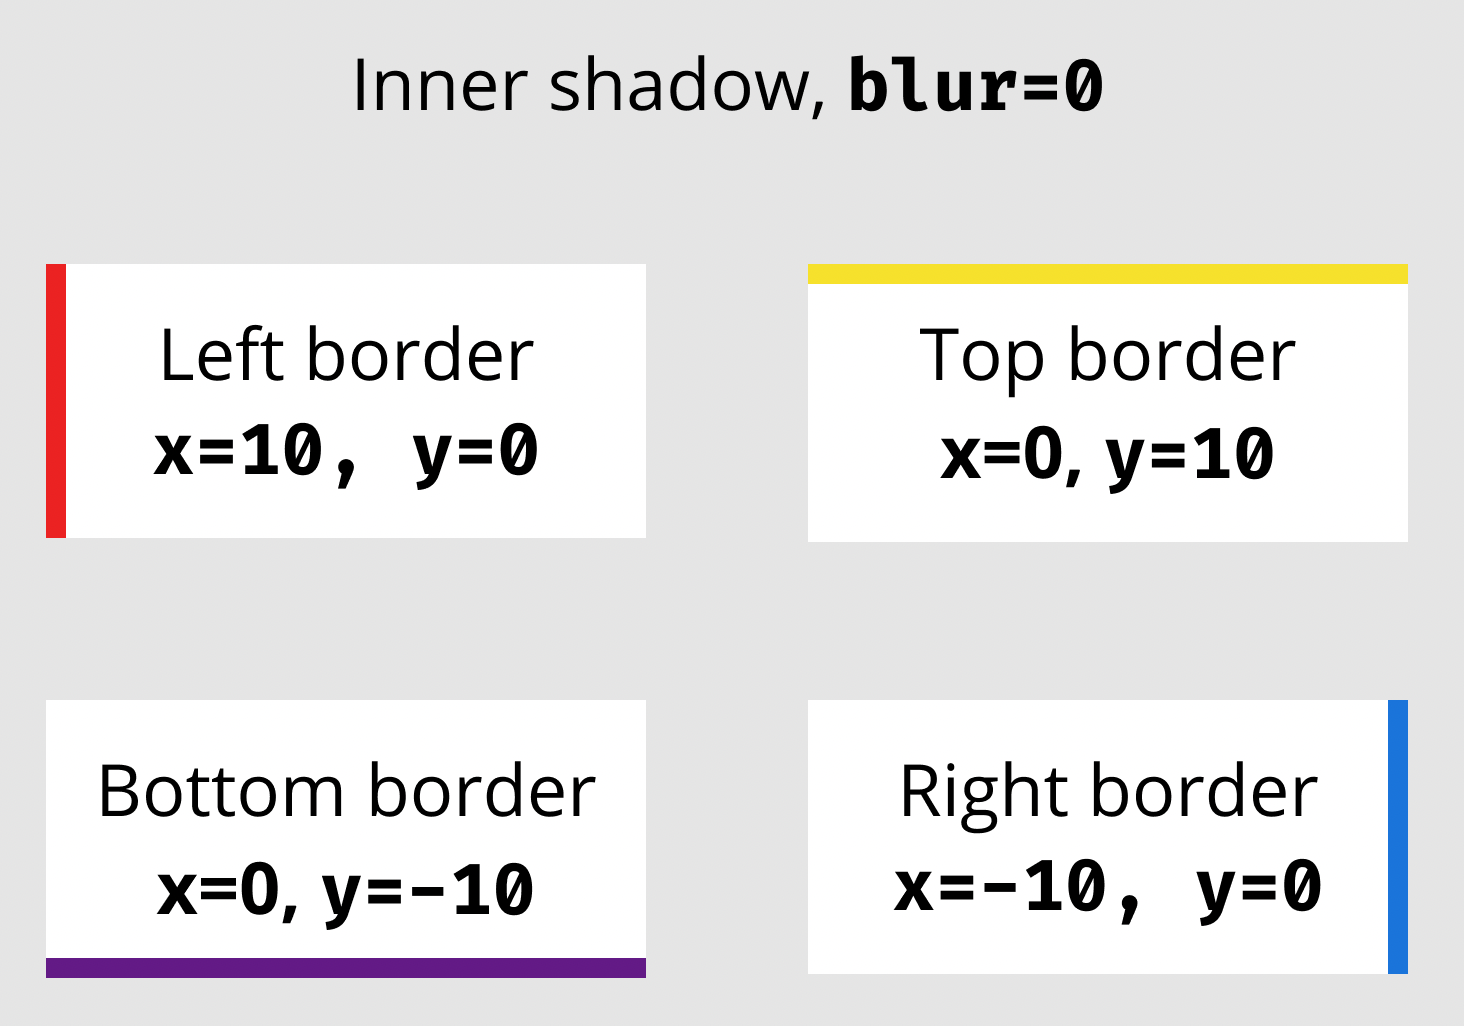 An inner shadow effect on each side of four rectangles